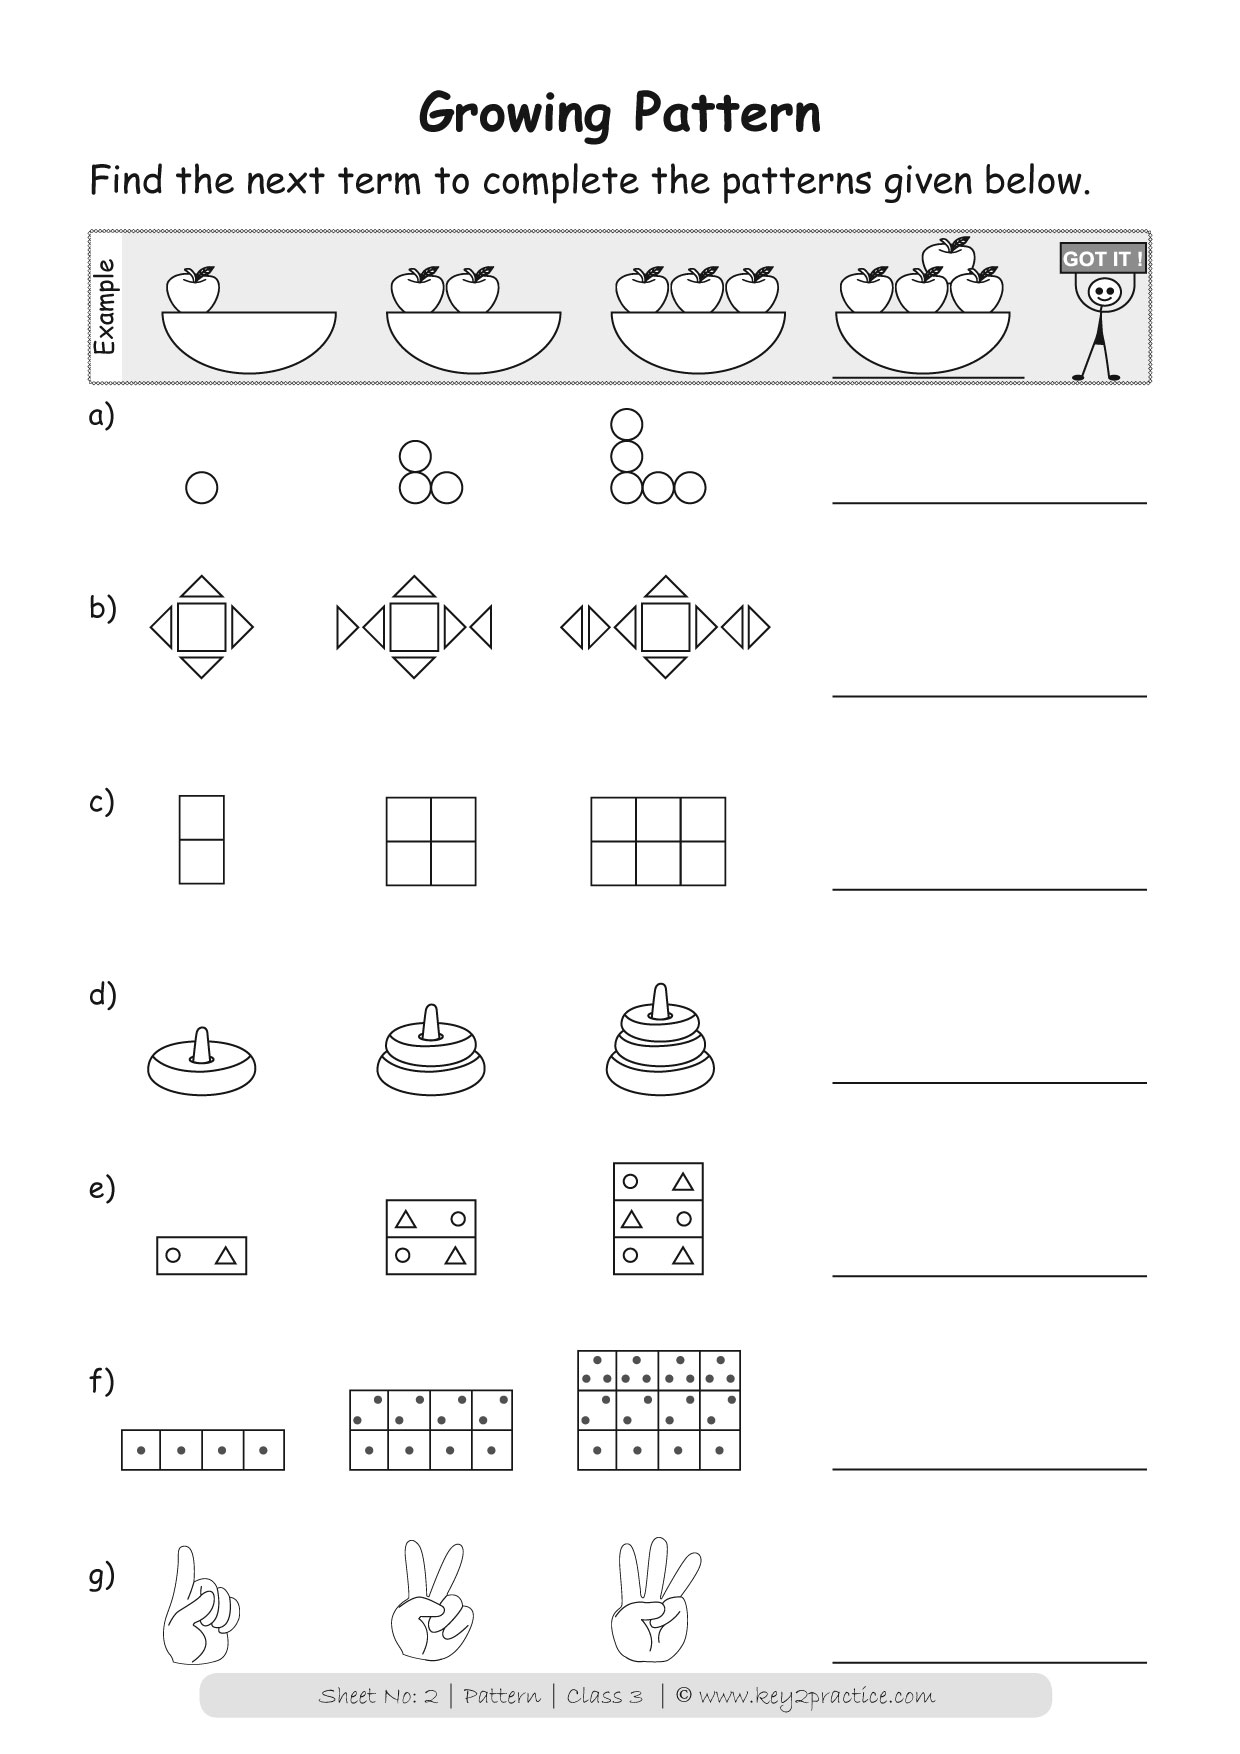 Worksheets Patterns I Maths Grade 3